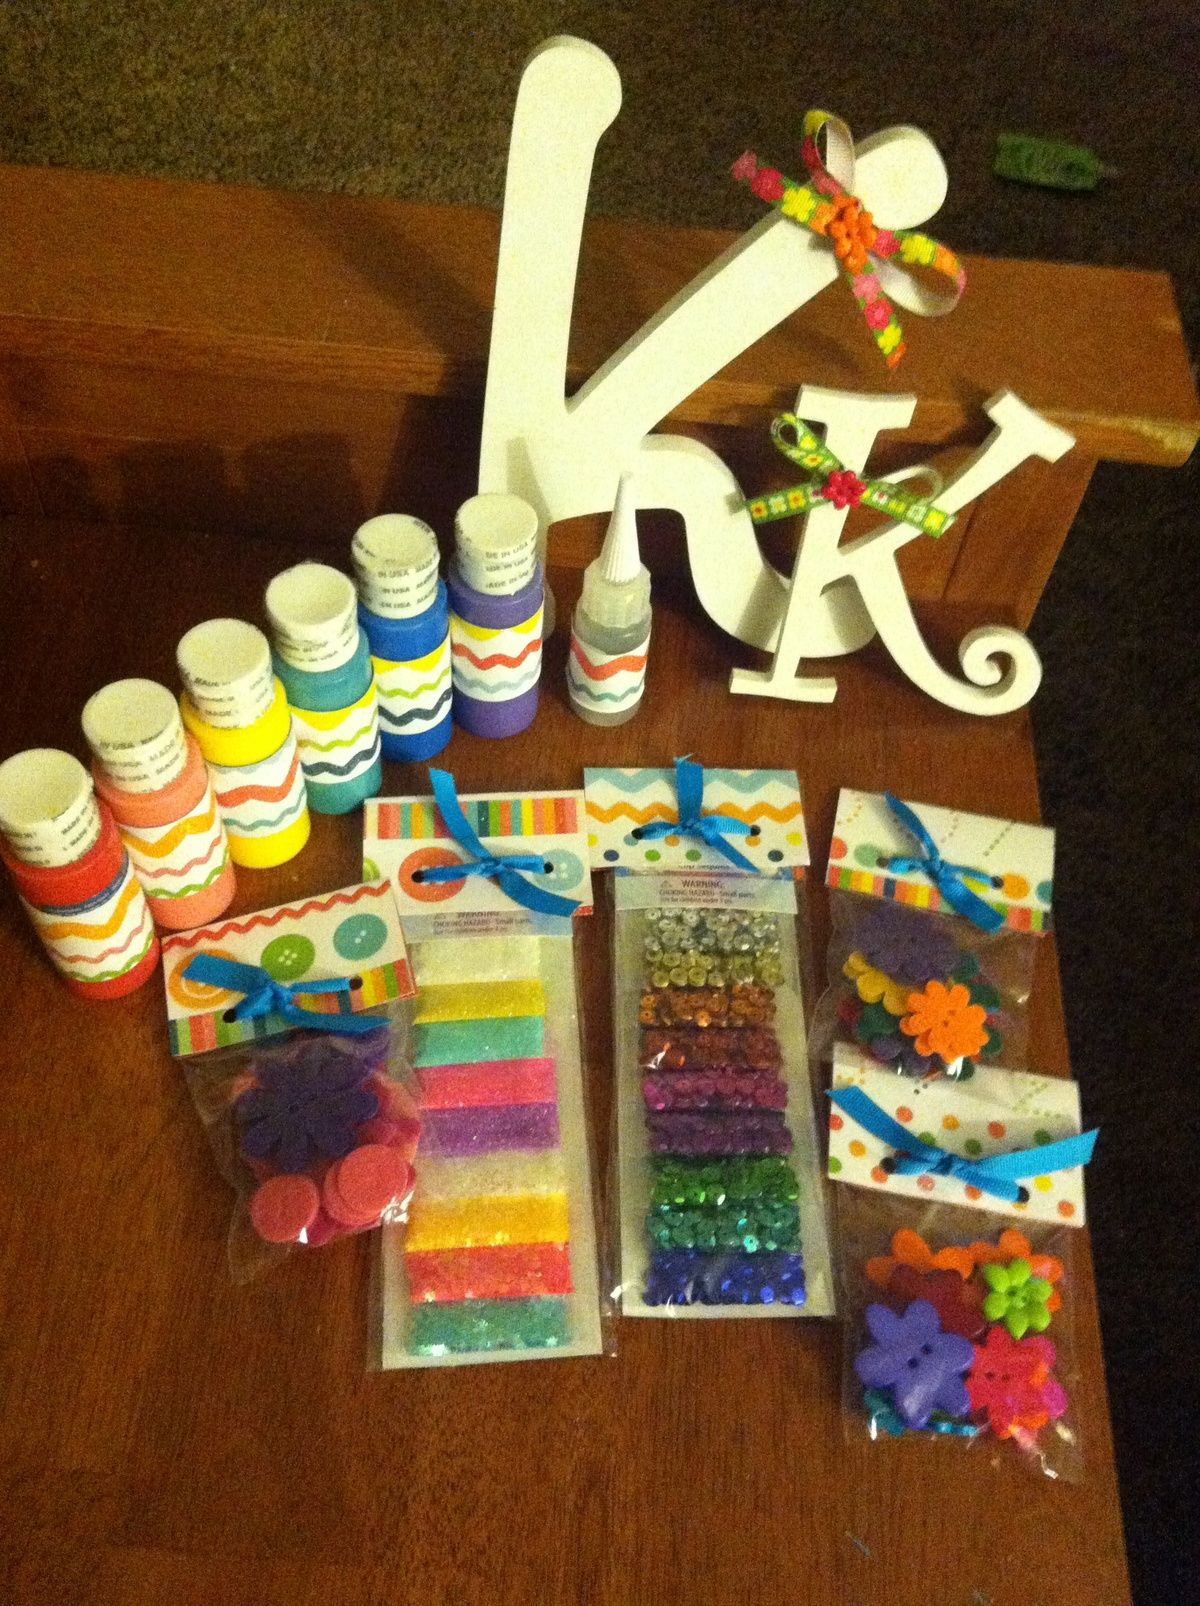 This Is A Cute Idea For Child Gift Alternatively Instead Of Paint I Could Provide Cute Scr